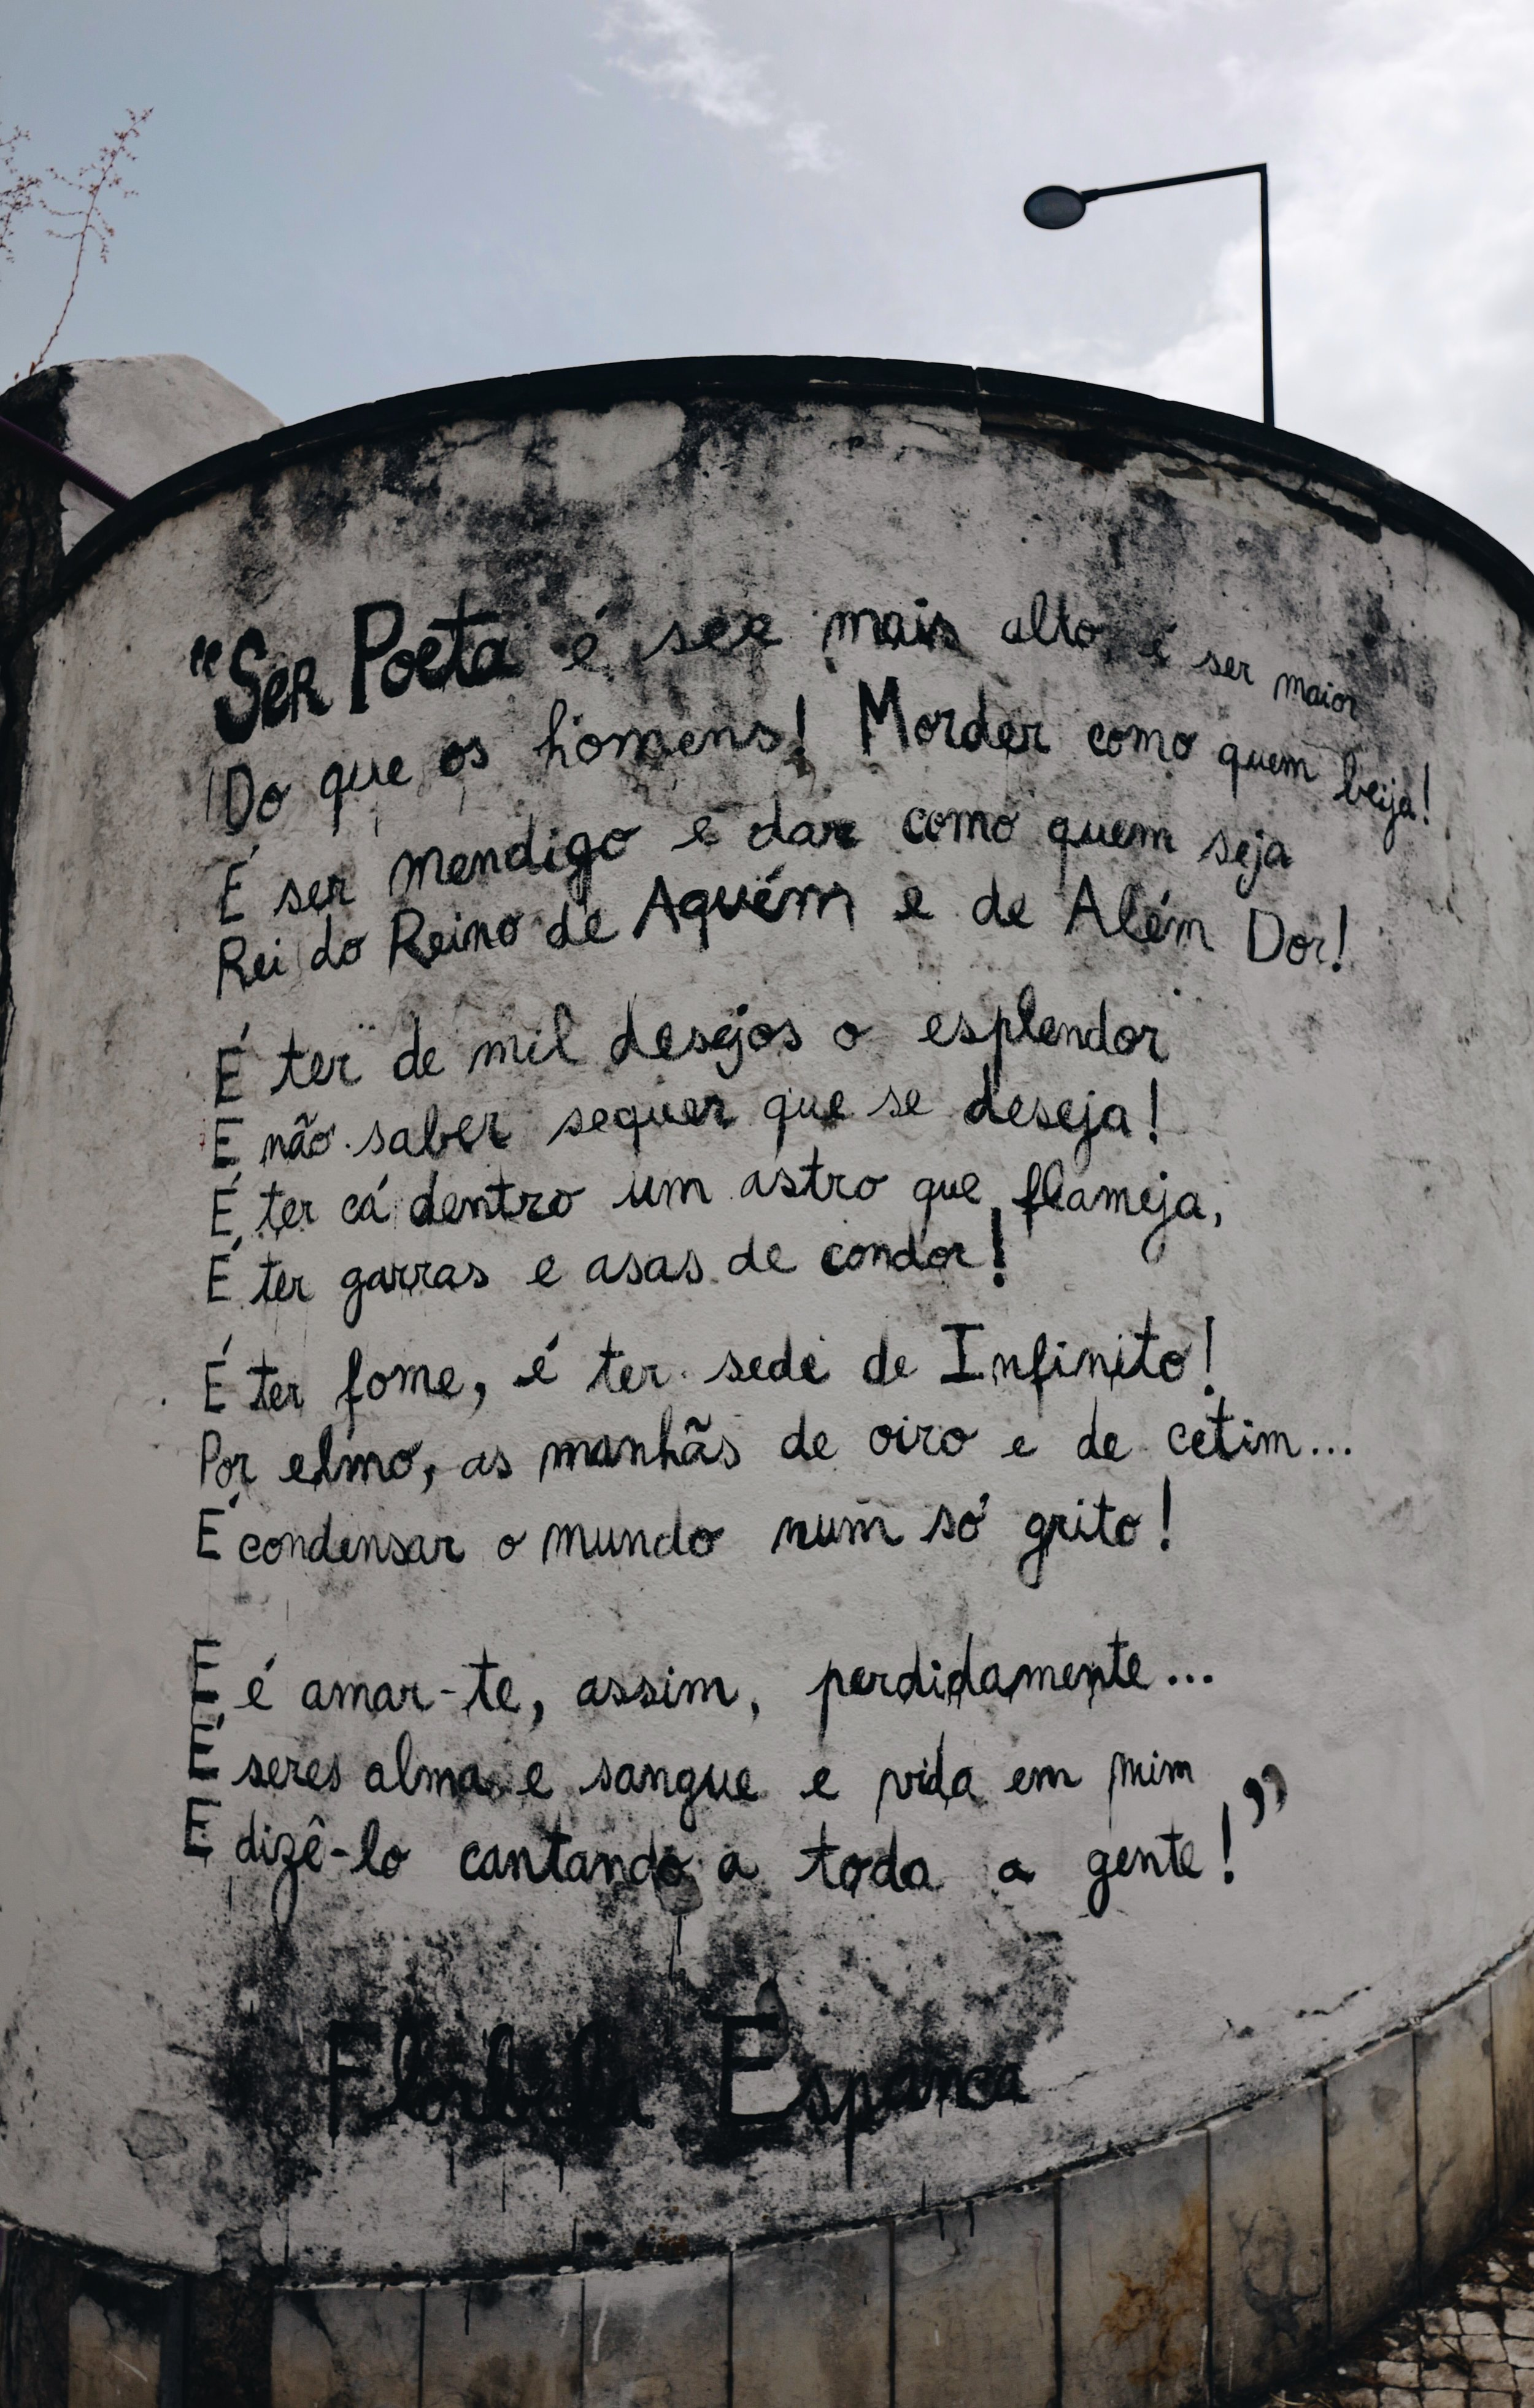 """That poem is so beautiful that I feel the need share the translation with my non Portuguese readers as well:  """"To be a poet it's to be taller, it's to be greater  Than men! Biting as the one who kisses!  It's to be a beggar and give as if you were  King of the Kingdom of Pain and Beyond the Pain!    It's to have the splendor out of a thousand wishes  And do not even know what you wish!  It's to have here inside a flashing star,  It's to have claws and wings of a condor!    It's to be hungry, it's to have thirst of Infinite!  With helmet, mornings of gold and satin...  It's to condense the world into a single cry!  And it's love you so madly...  And it's you being soul, and blood and life in me...  And saying it singing to everybody!"""""""